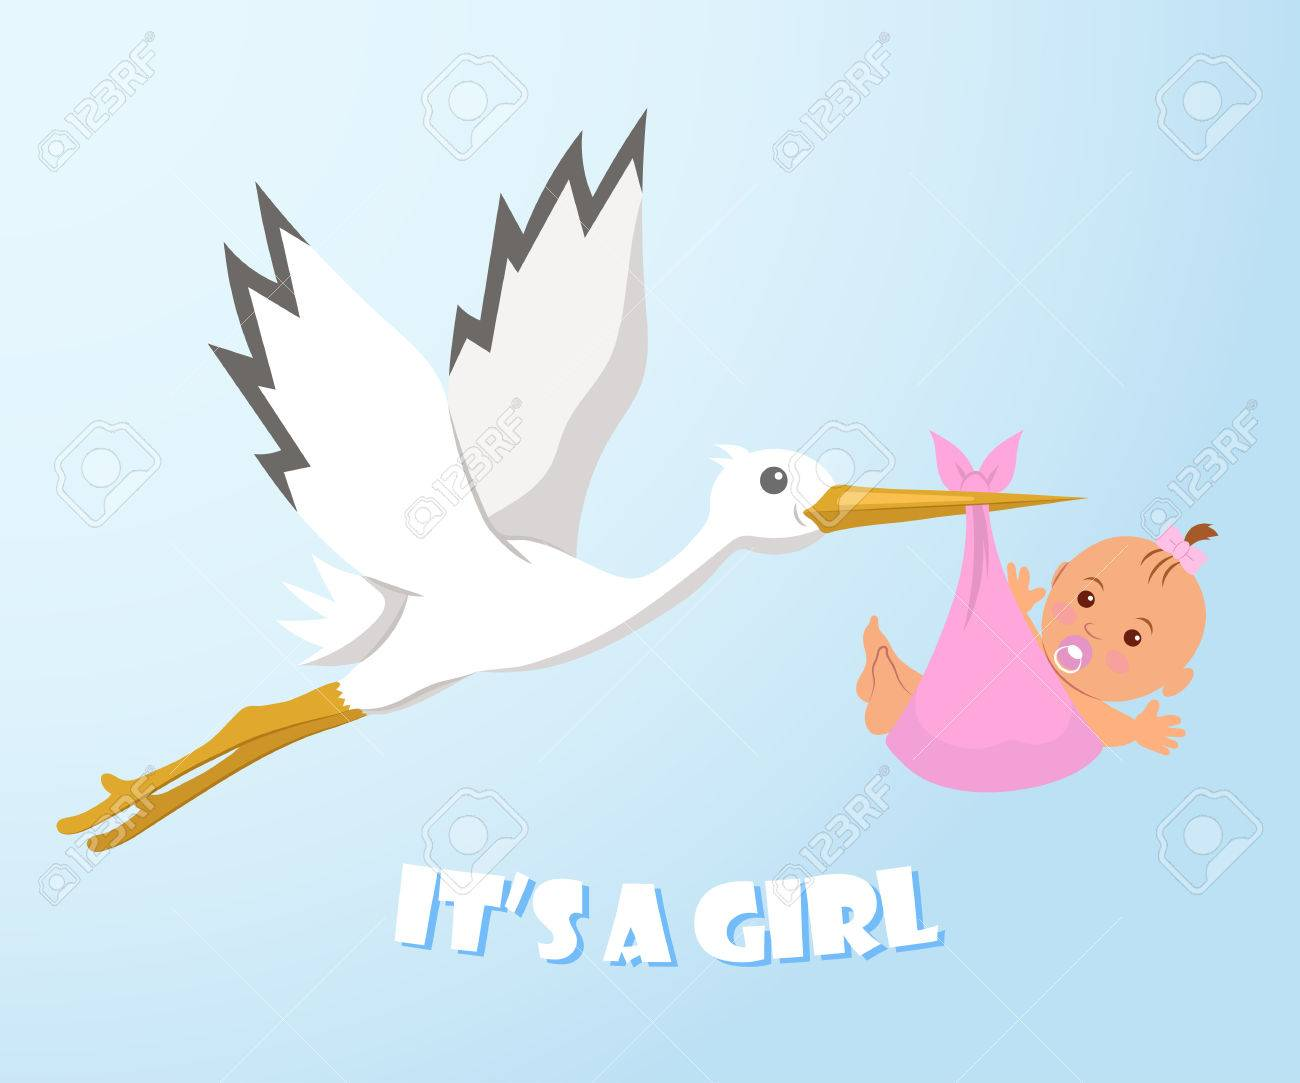 Stork and baby. Stork carries a baby in a diaper. It's a Girl. - 52546649